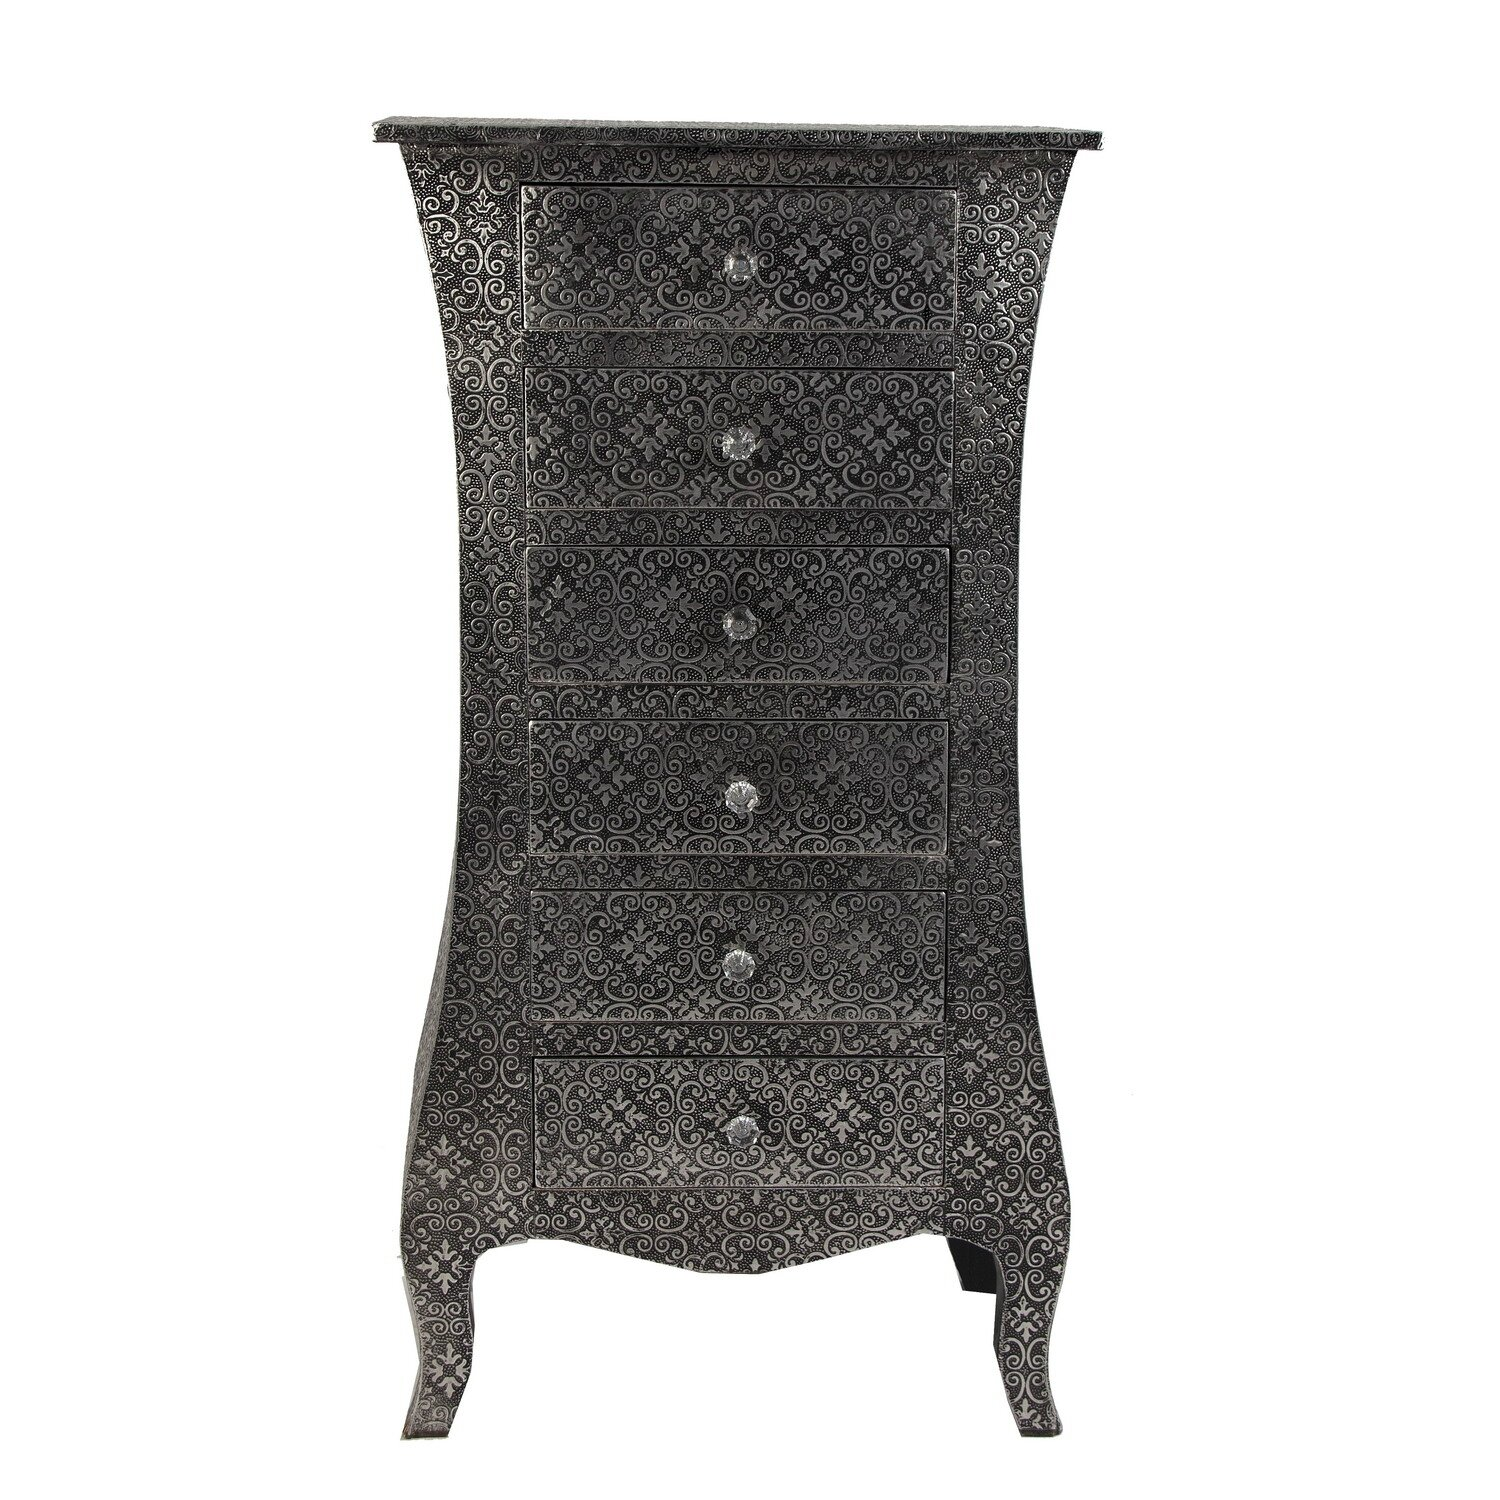 chiffonnier baroque argent meubles et d coration amadeus au grenier de juliette. Black Bedroom Furniture Sets. Home Design Ideas